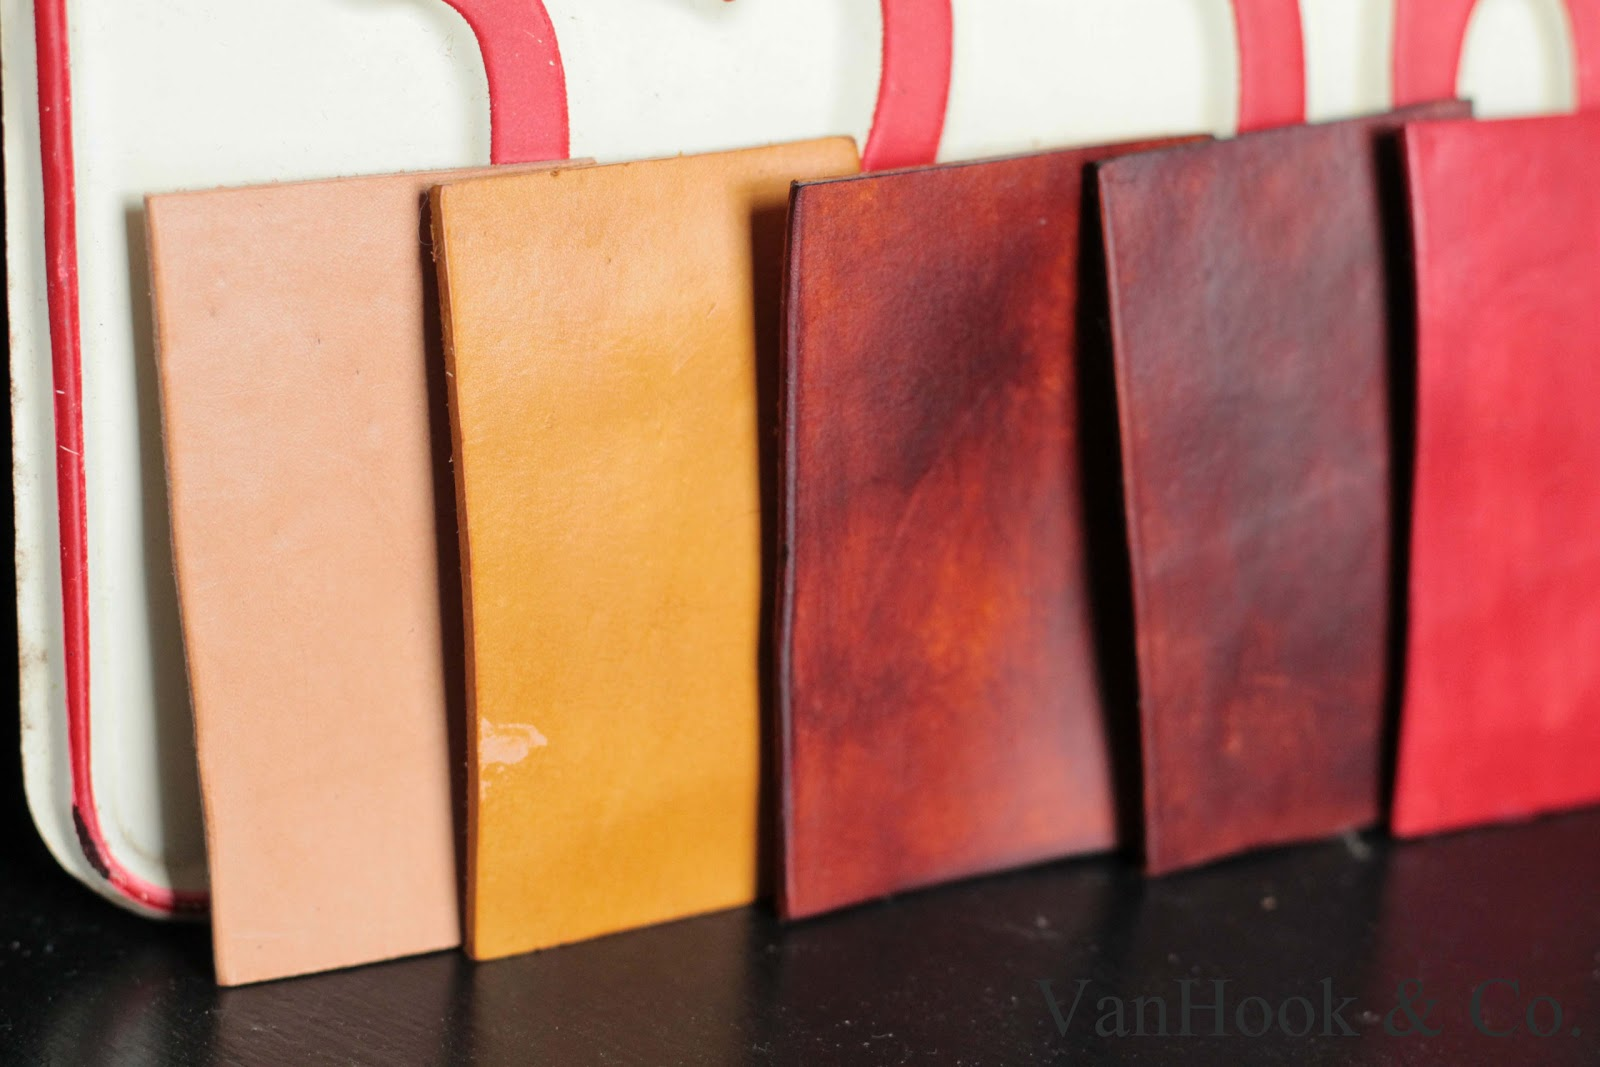 VanHook Co Leather Dye Colors